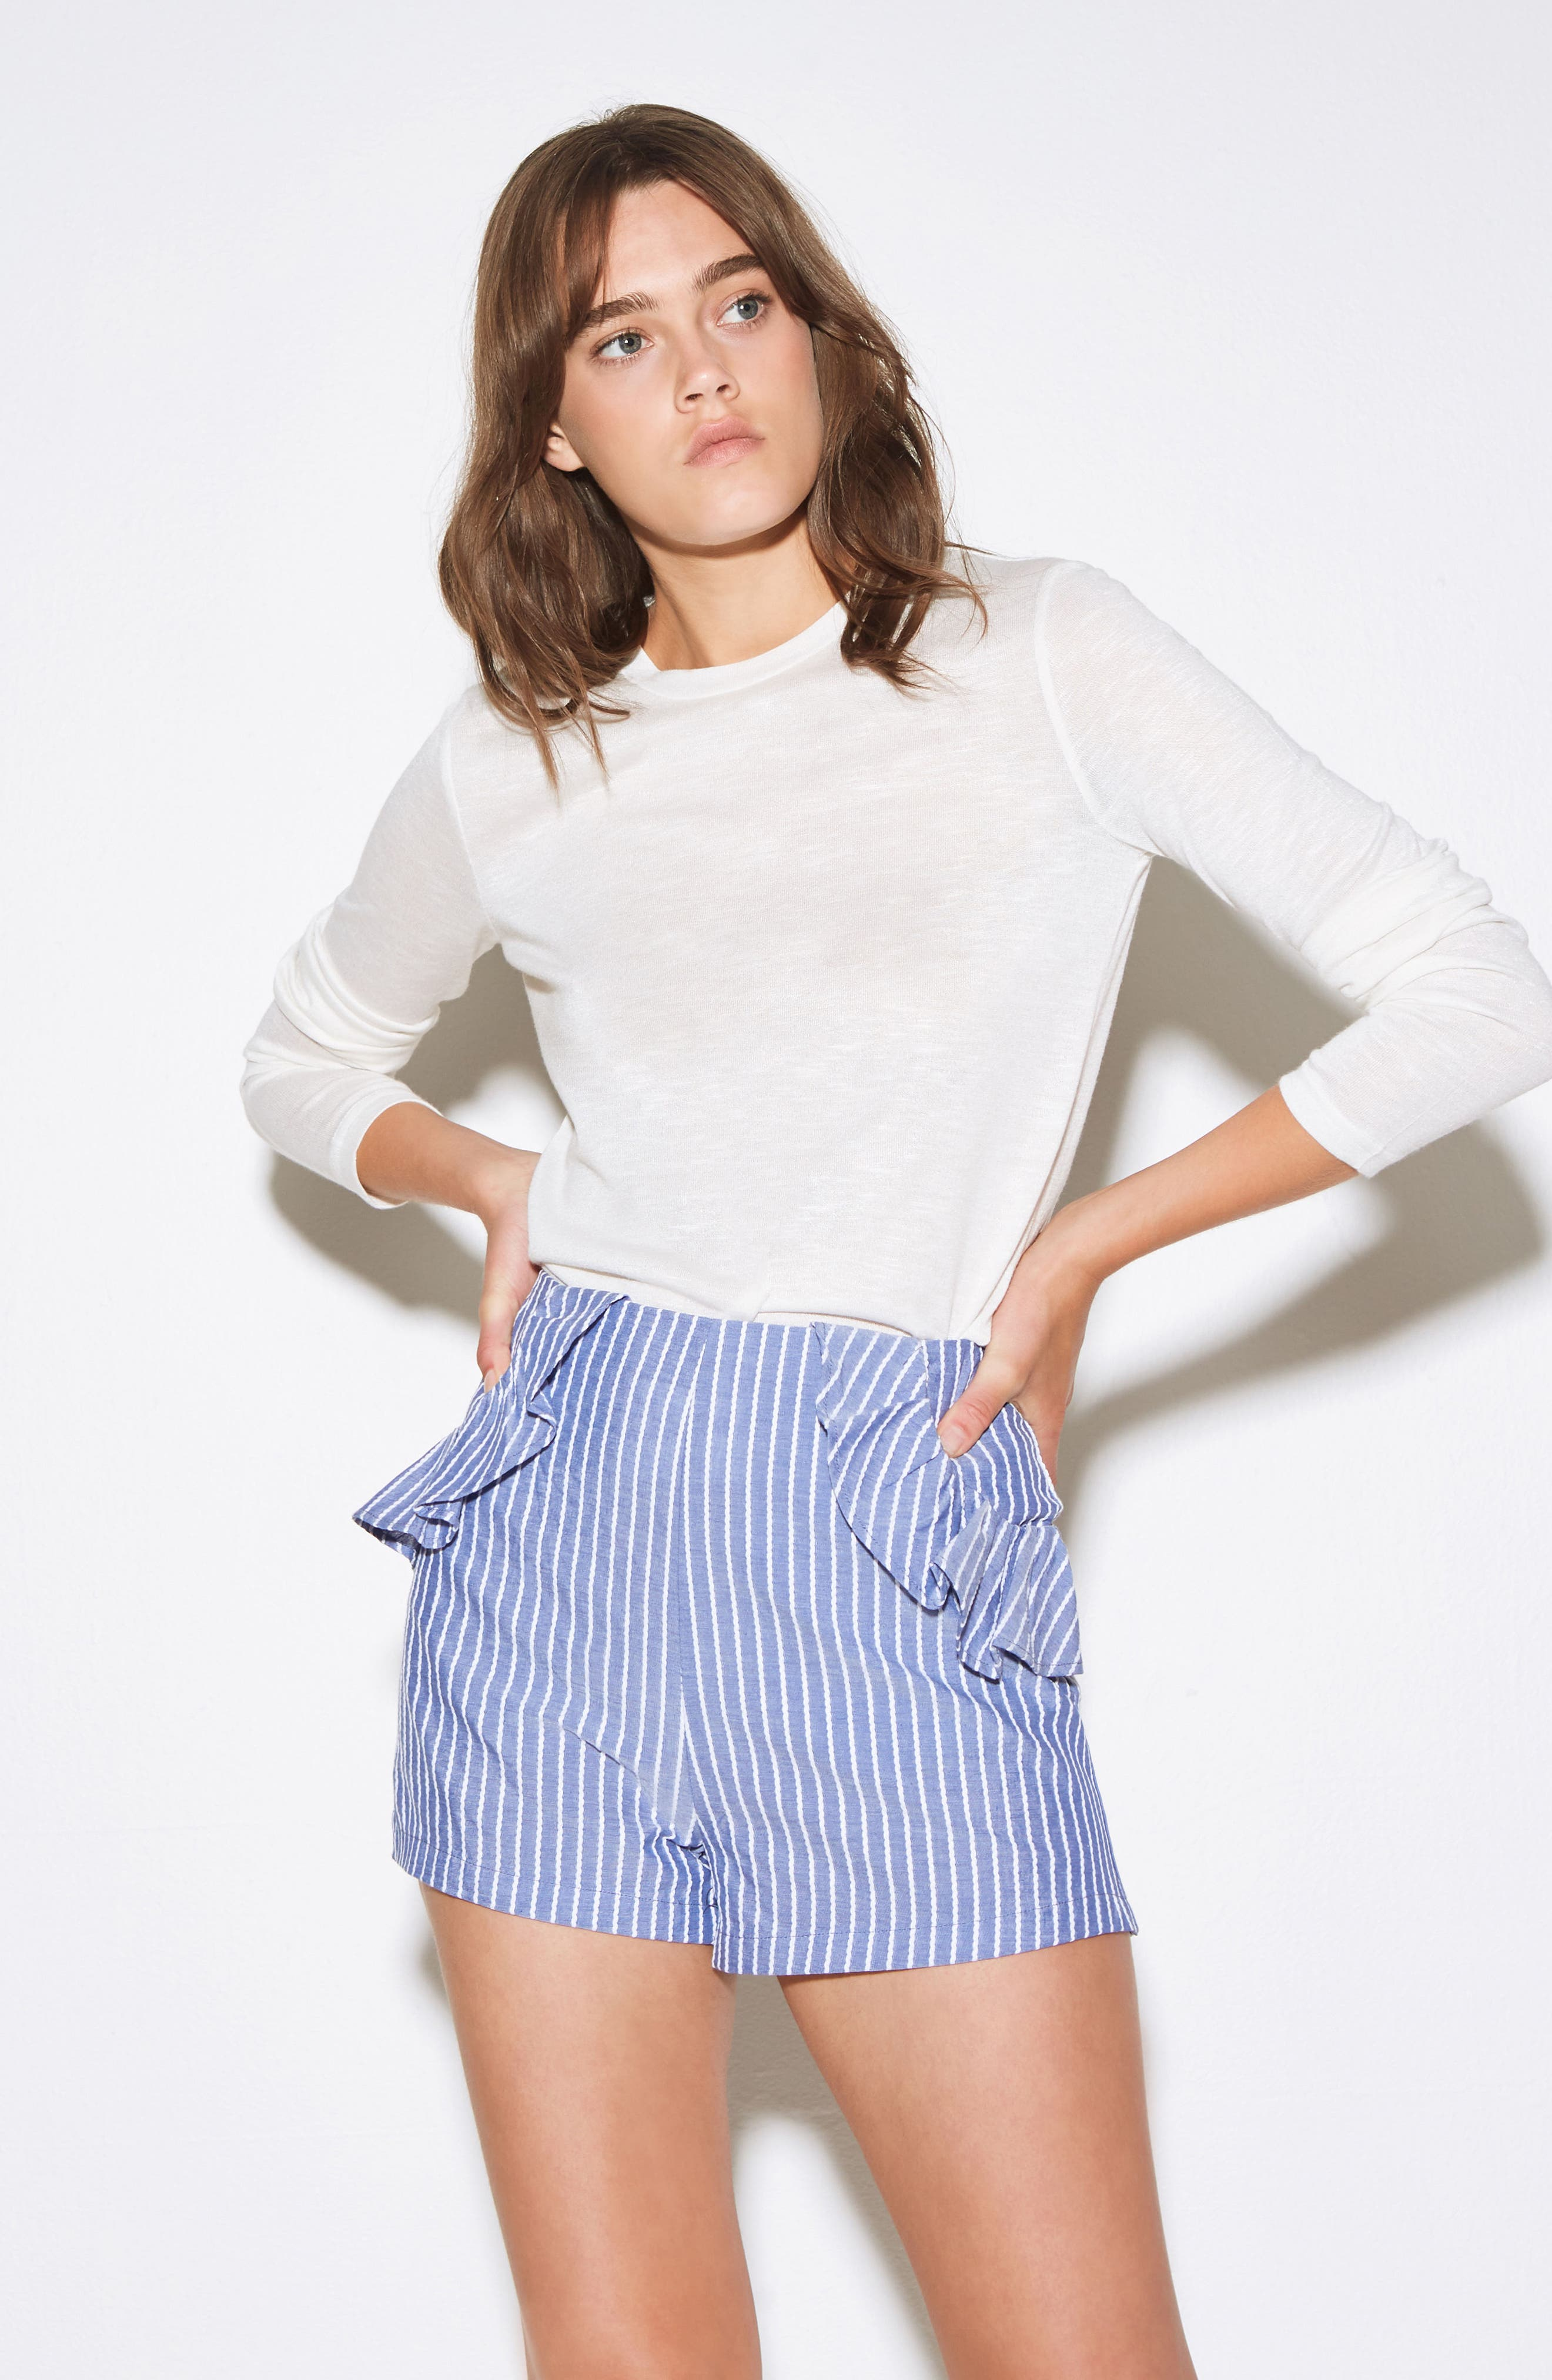 Parcel Ruffle Detail Shorts,                             Alternate thumbnail 2, color,                             Blue With White